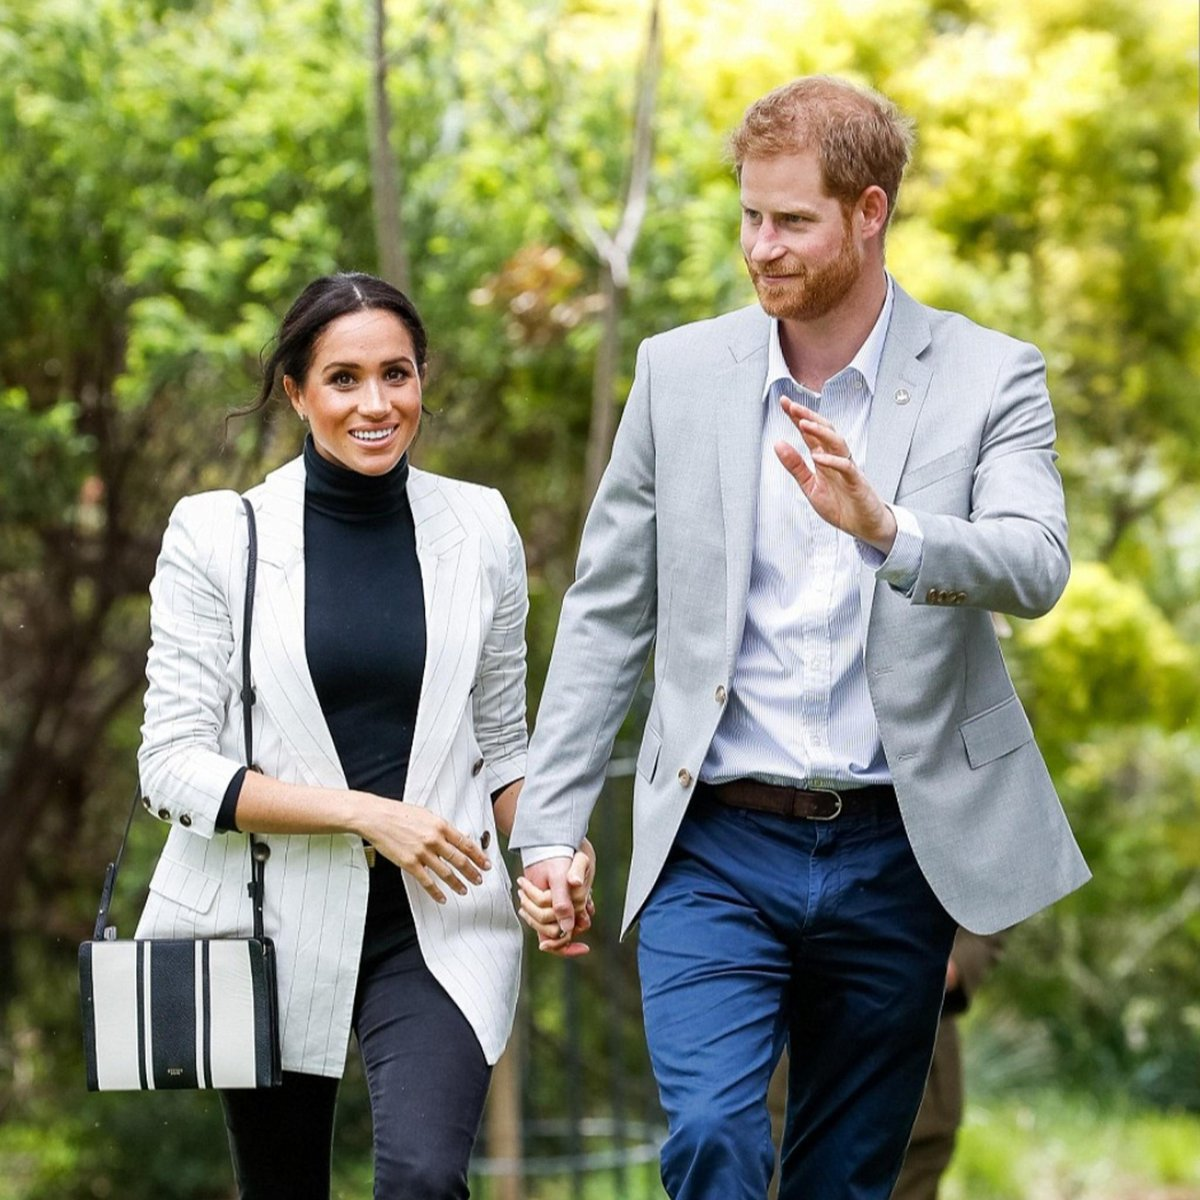 Meghan Markle and Prince Harry Have Reportedly Pushed Back U.S. Visit Until After Their Baby Arrives https://t.co/ylWIZtQ3xI